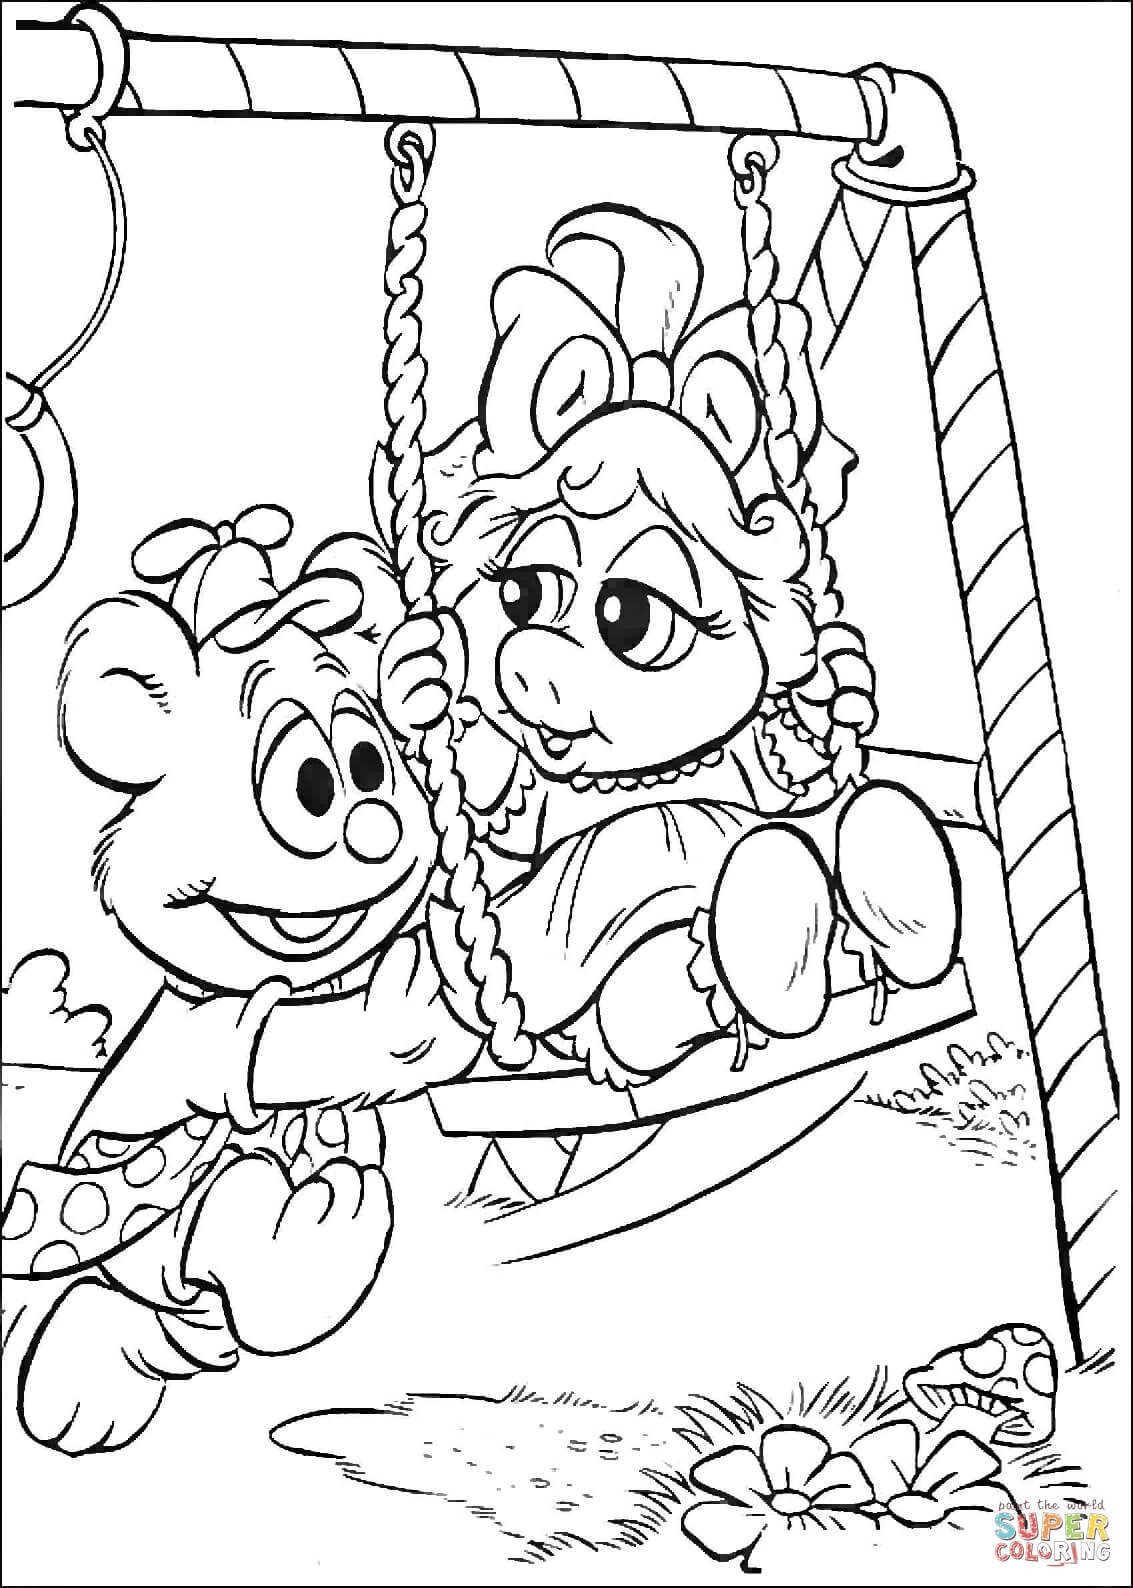 Baby Fozzie And Baby Miss Piggy On A Swings Coloring Page